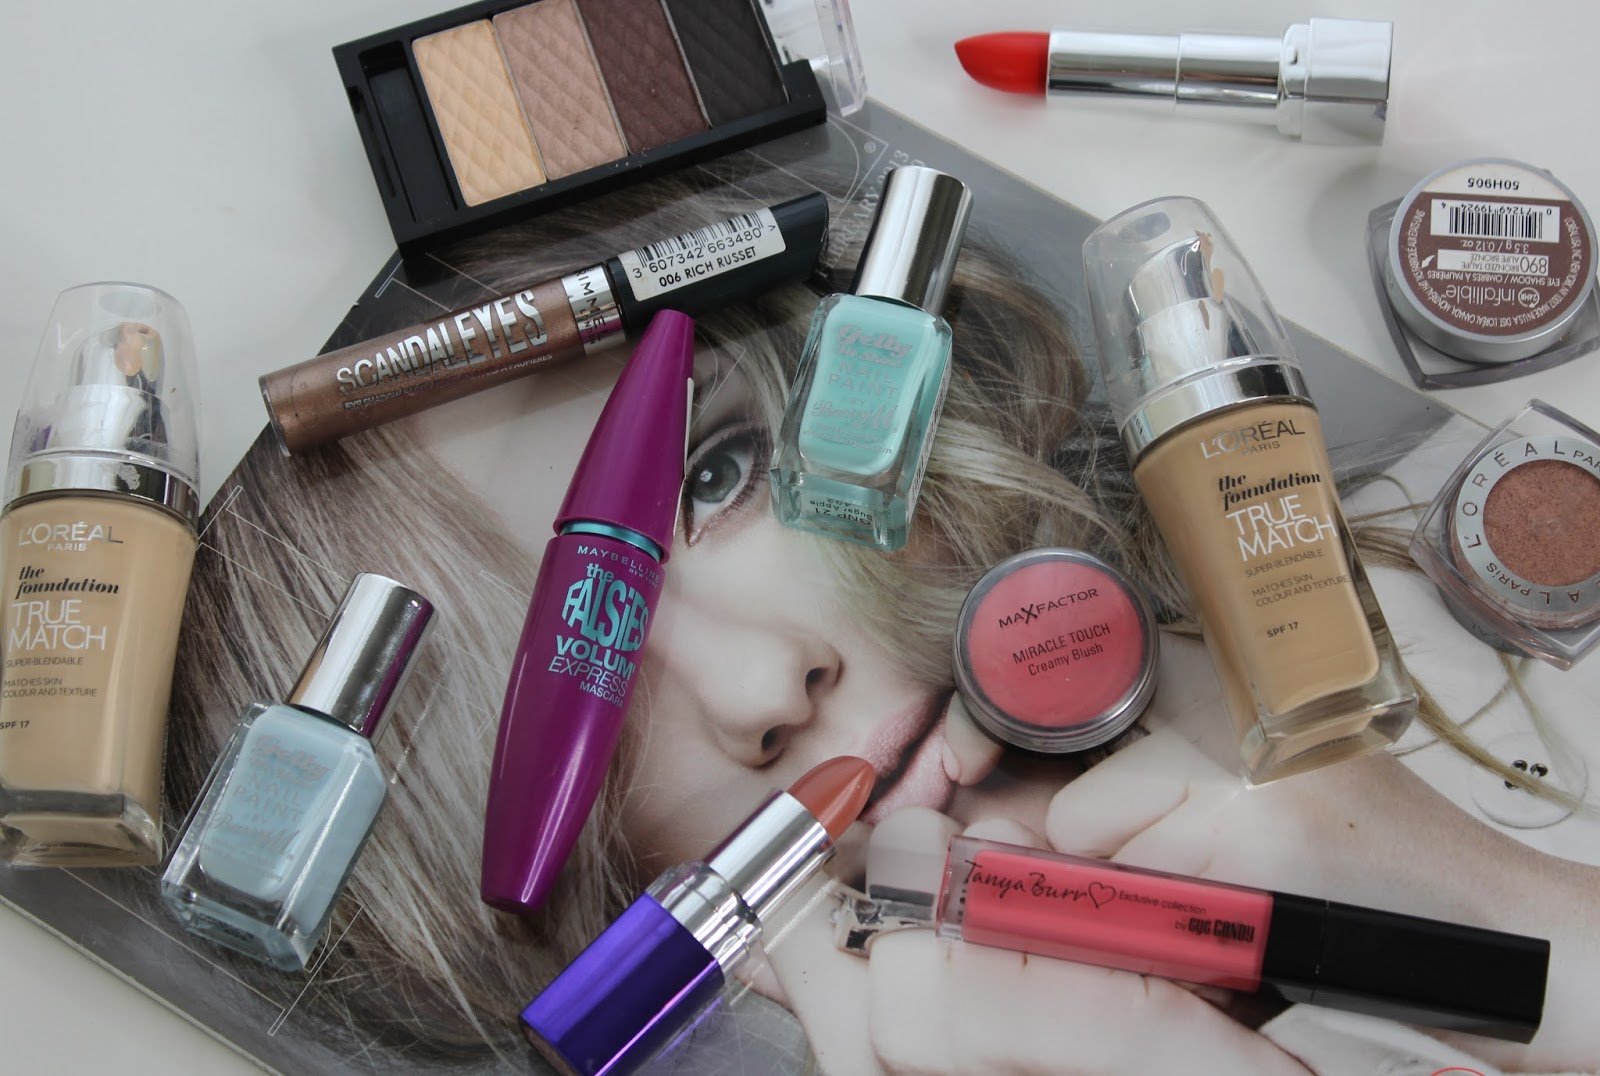 10 THINGS TO TRY IN SUPERDRUG – Lily Pebbles